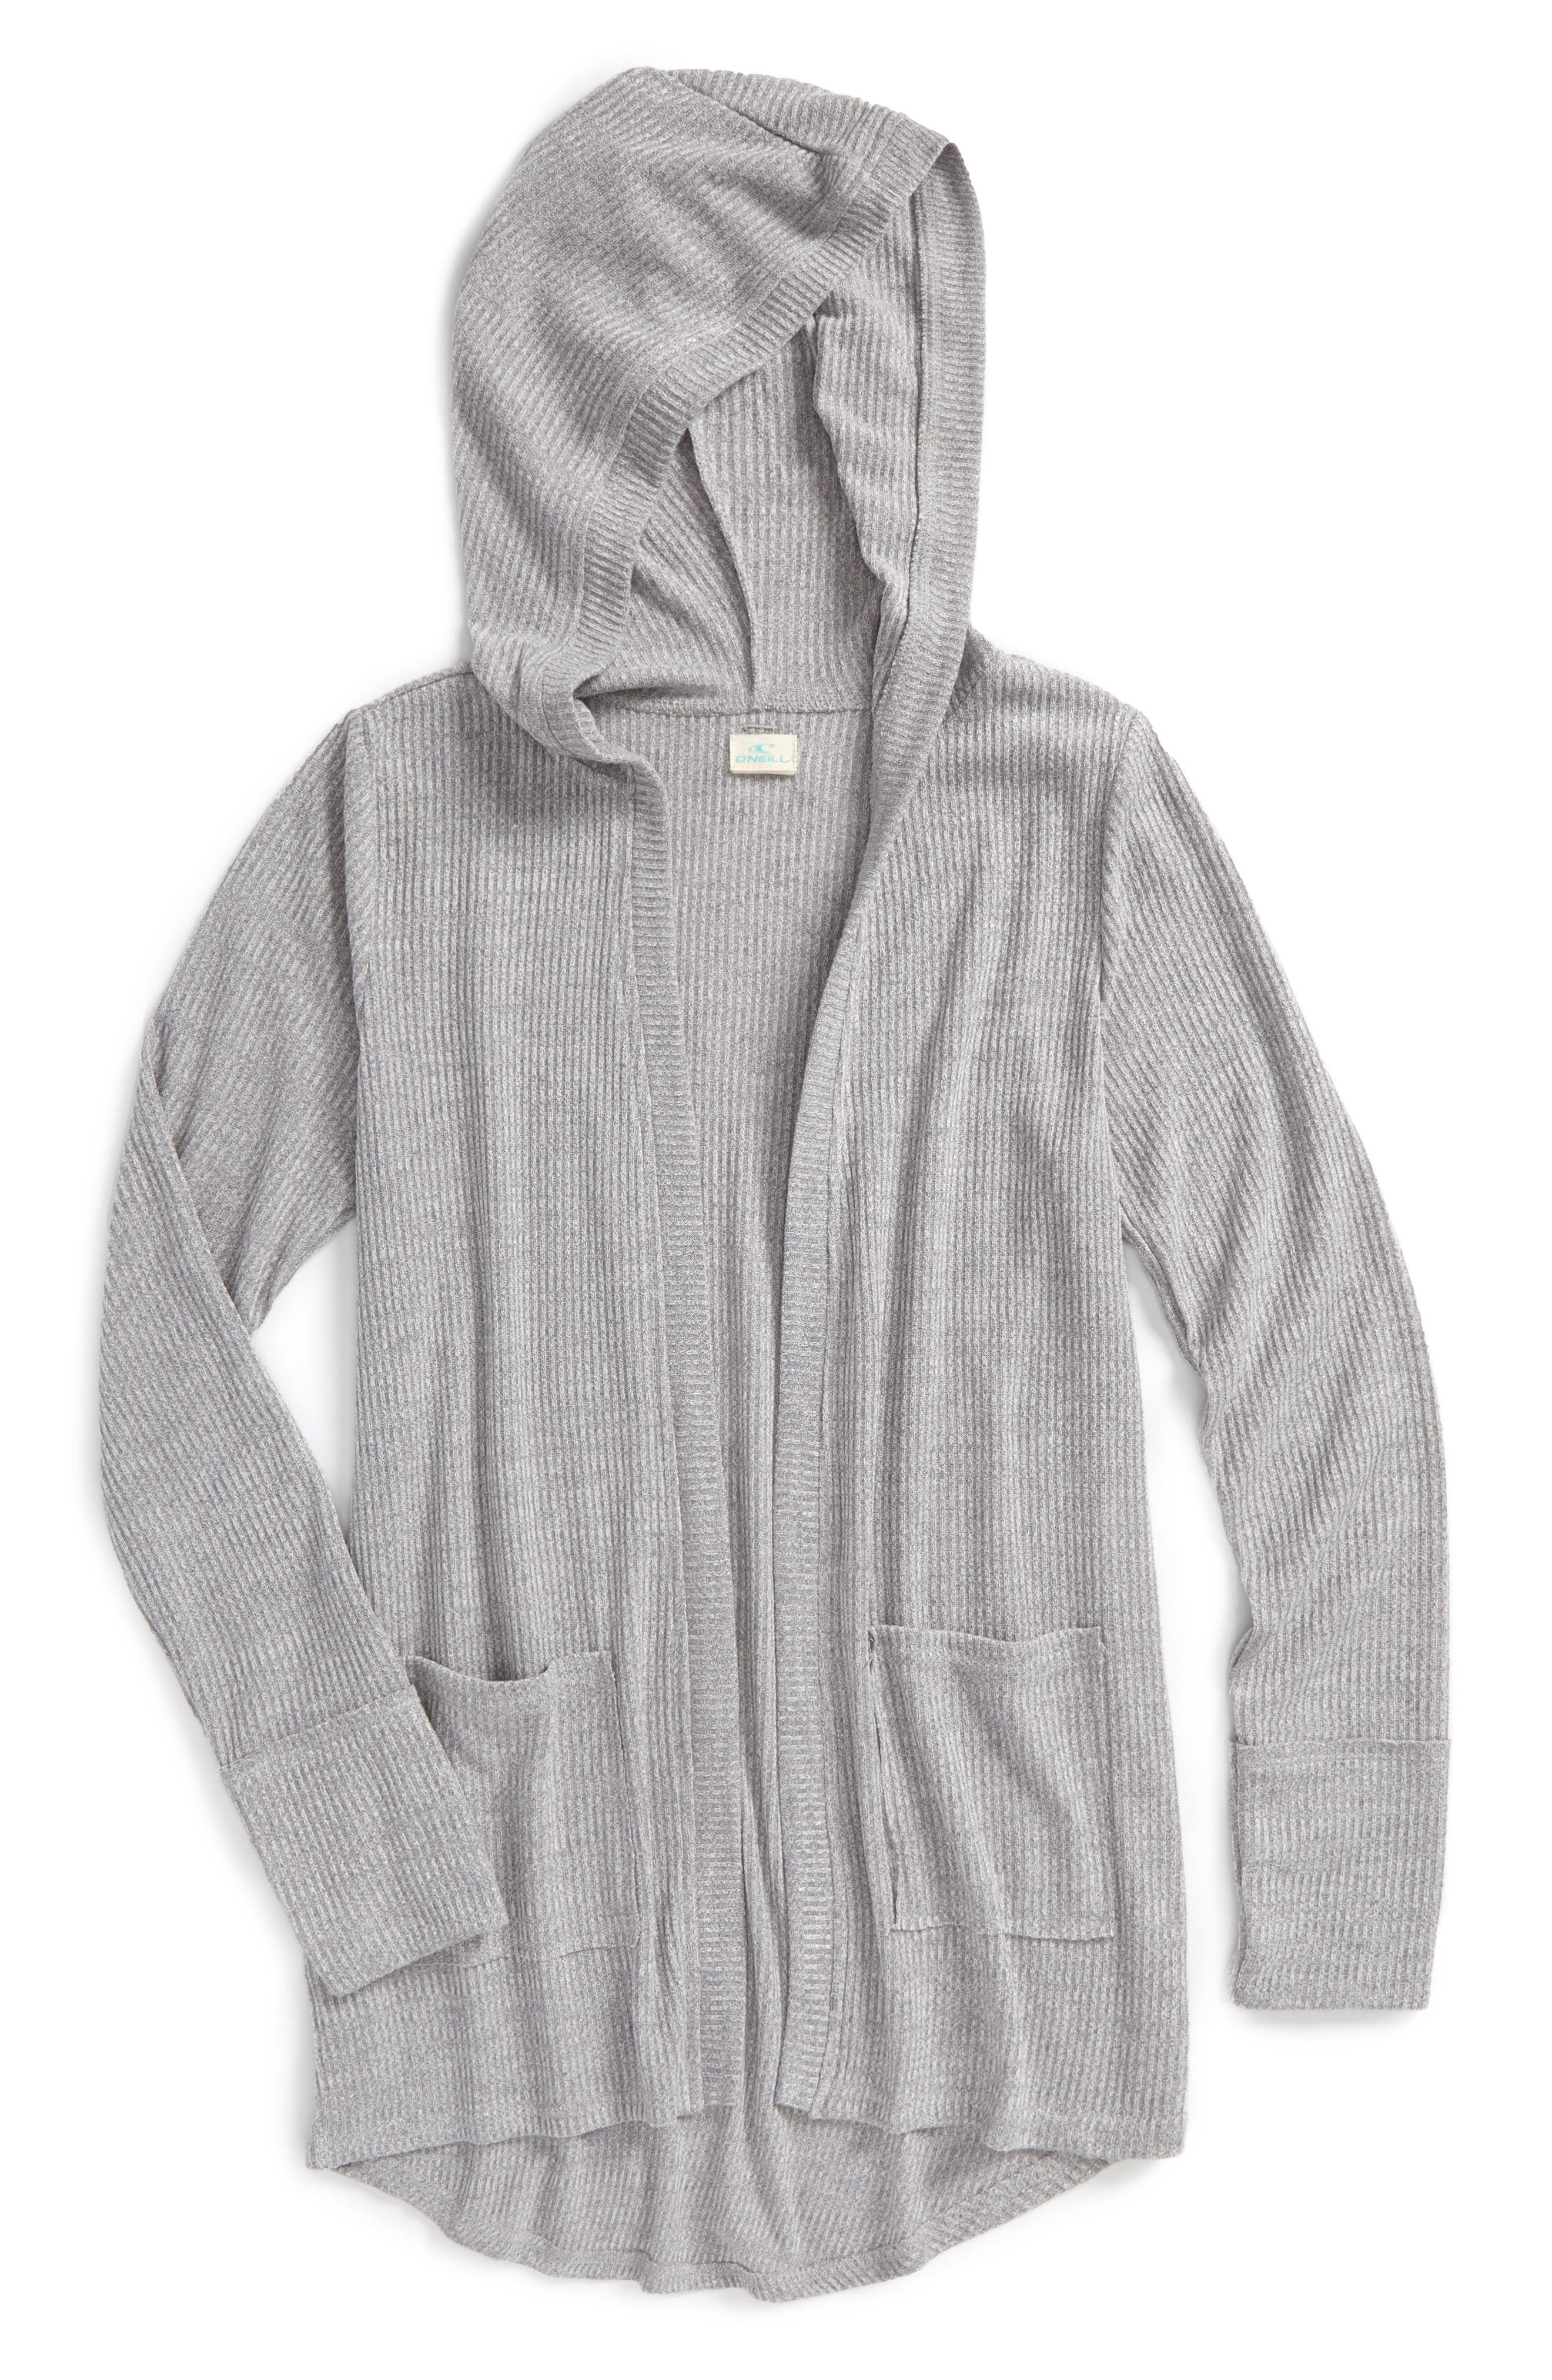 Blizzard Knit Hooded Cardigan,                         Main,                         color,